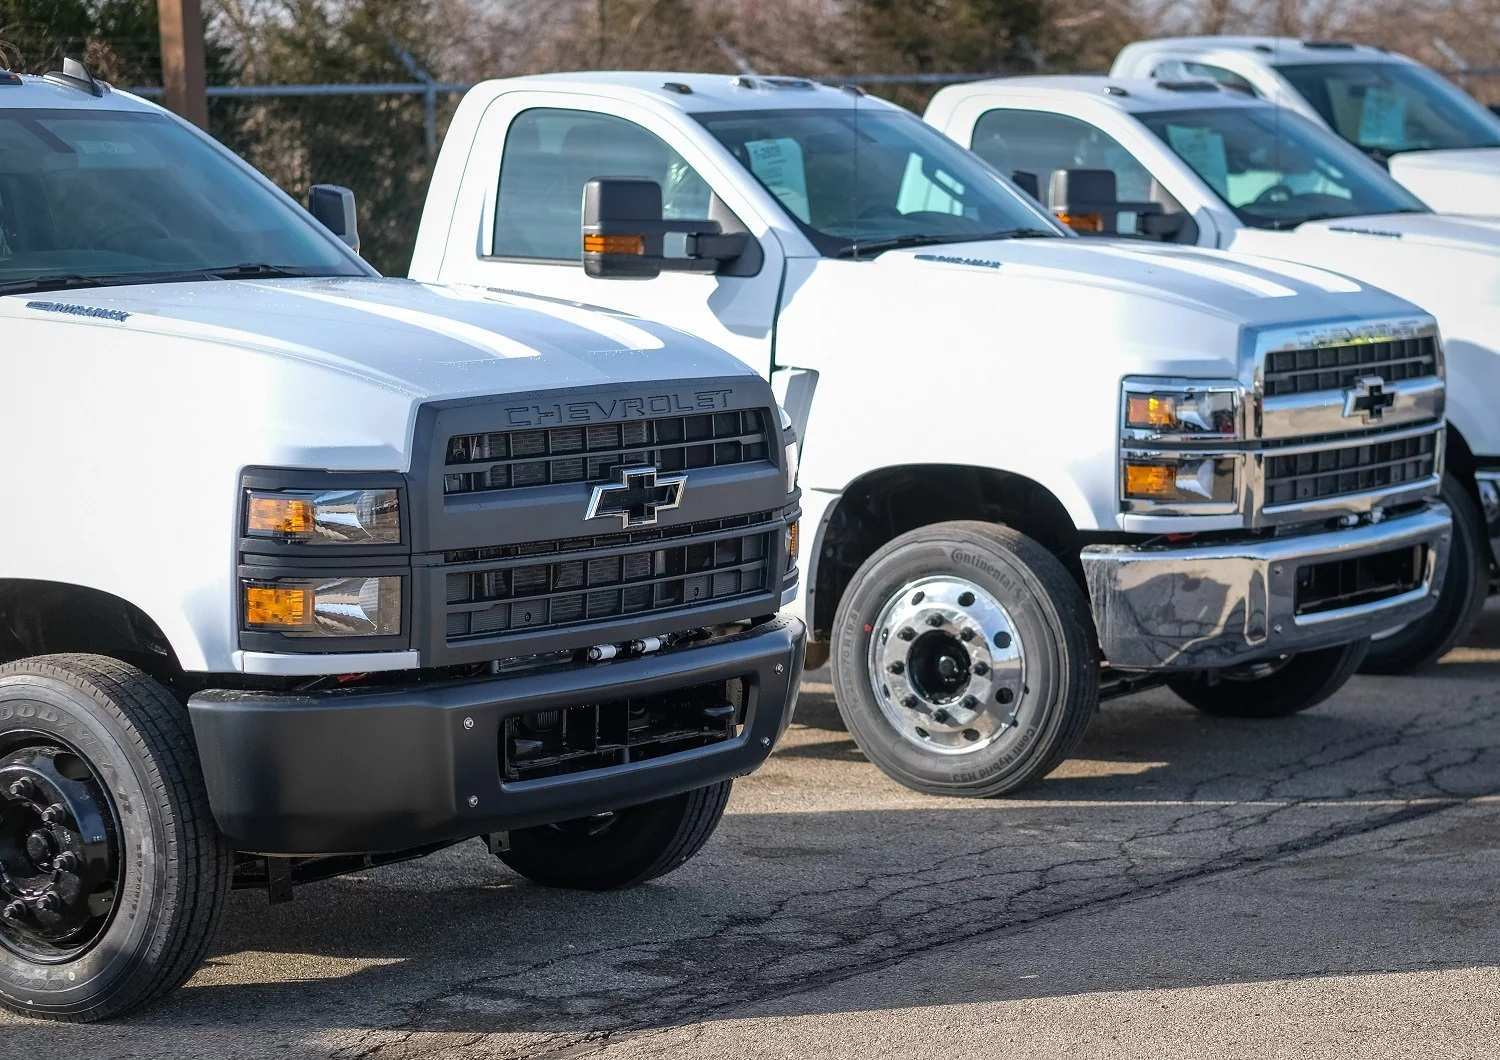 49 Gallery of New 2019 Chevrolet 4500 And 5500 Review And Specs Ratings for New 2019 Chevrolet 4500 And 5500 Review And Specs